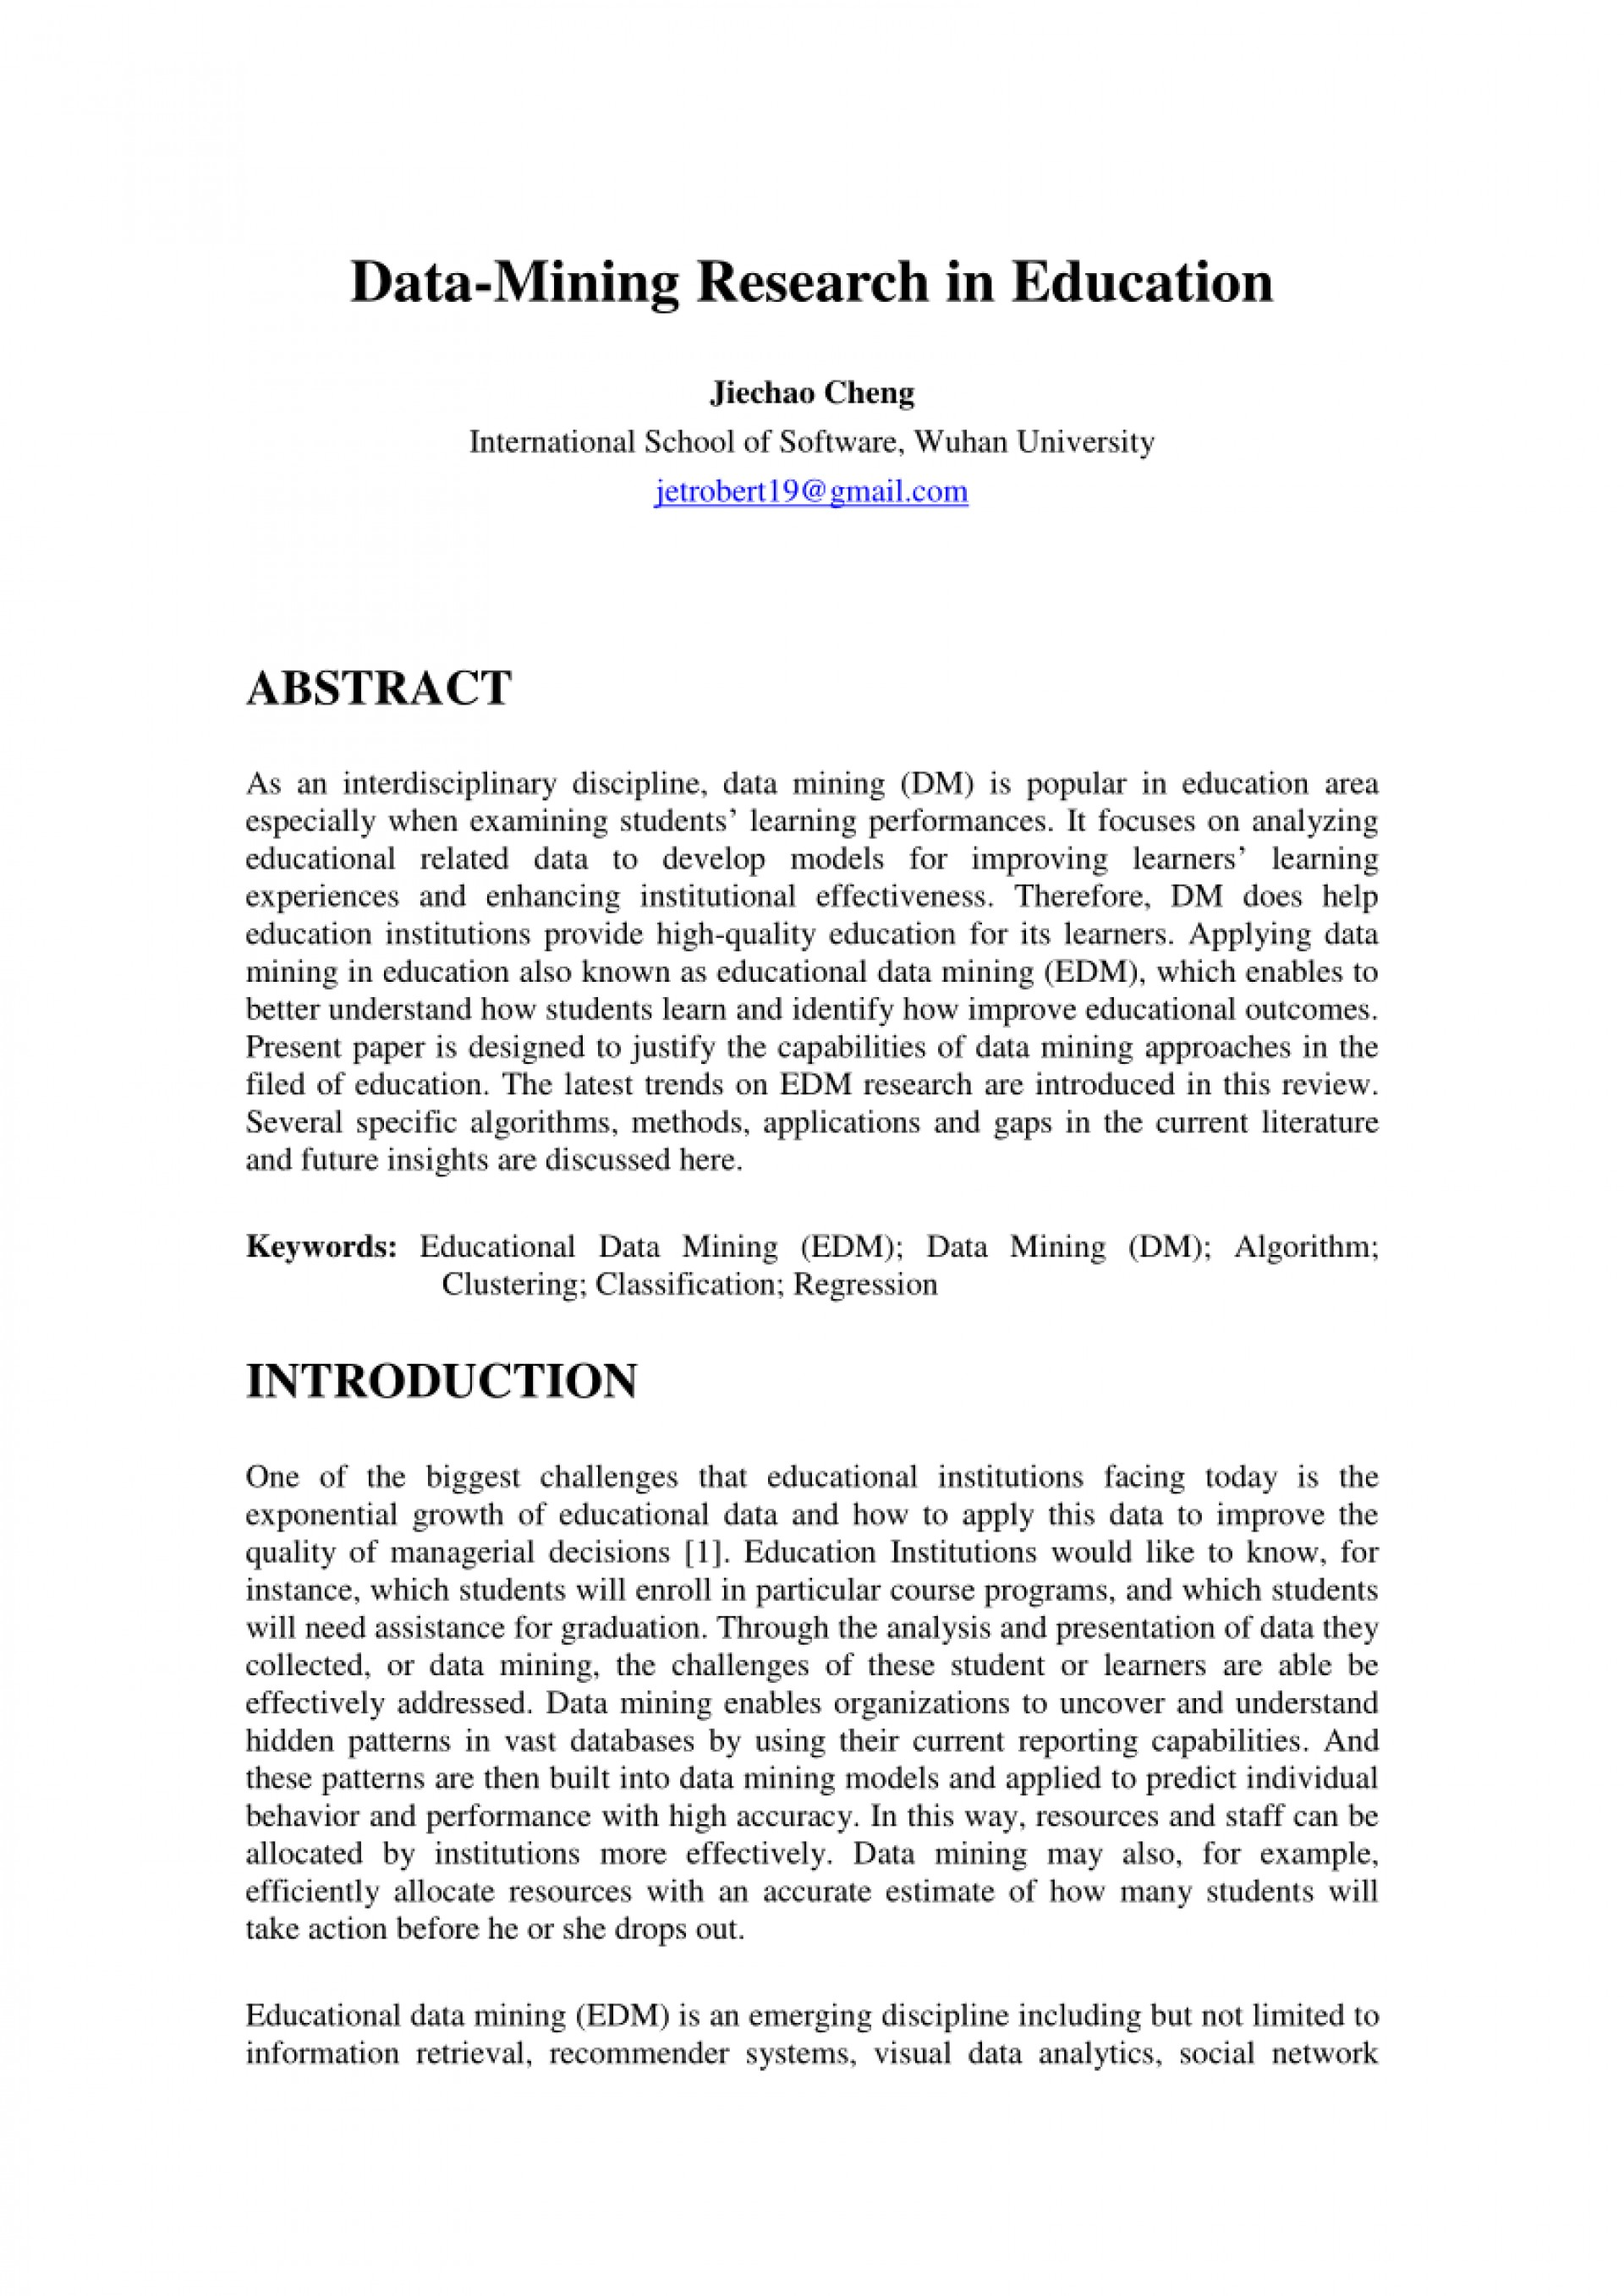 009 Research Paper Educational Data Mining Papers Pdf Sensational 1920